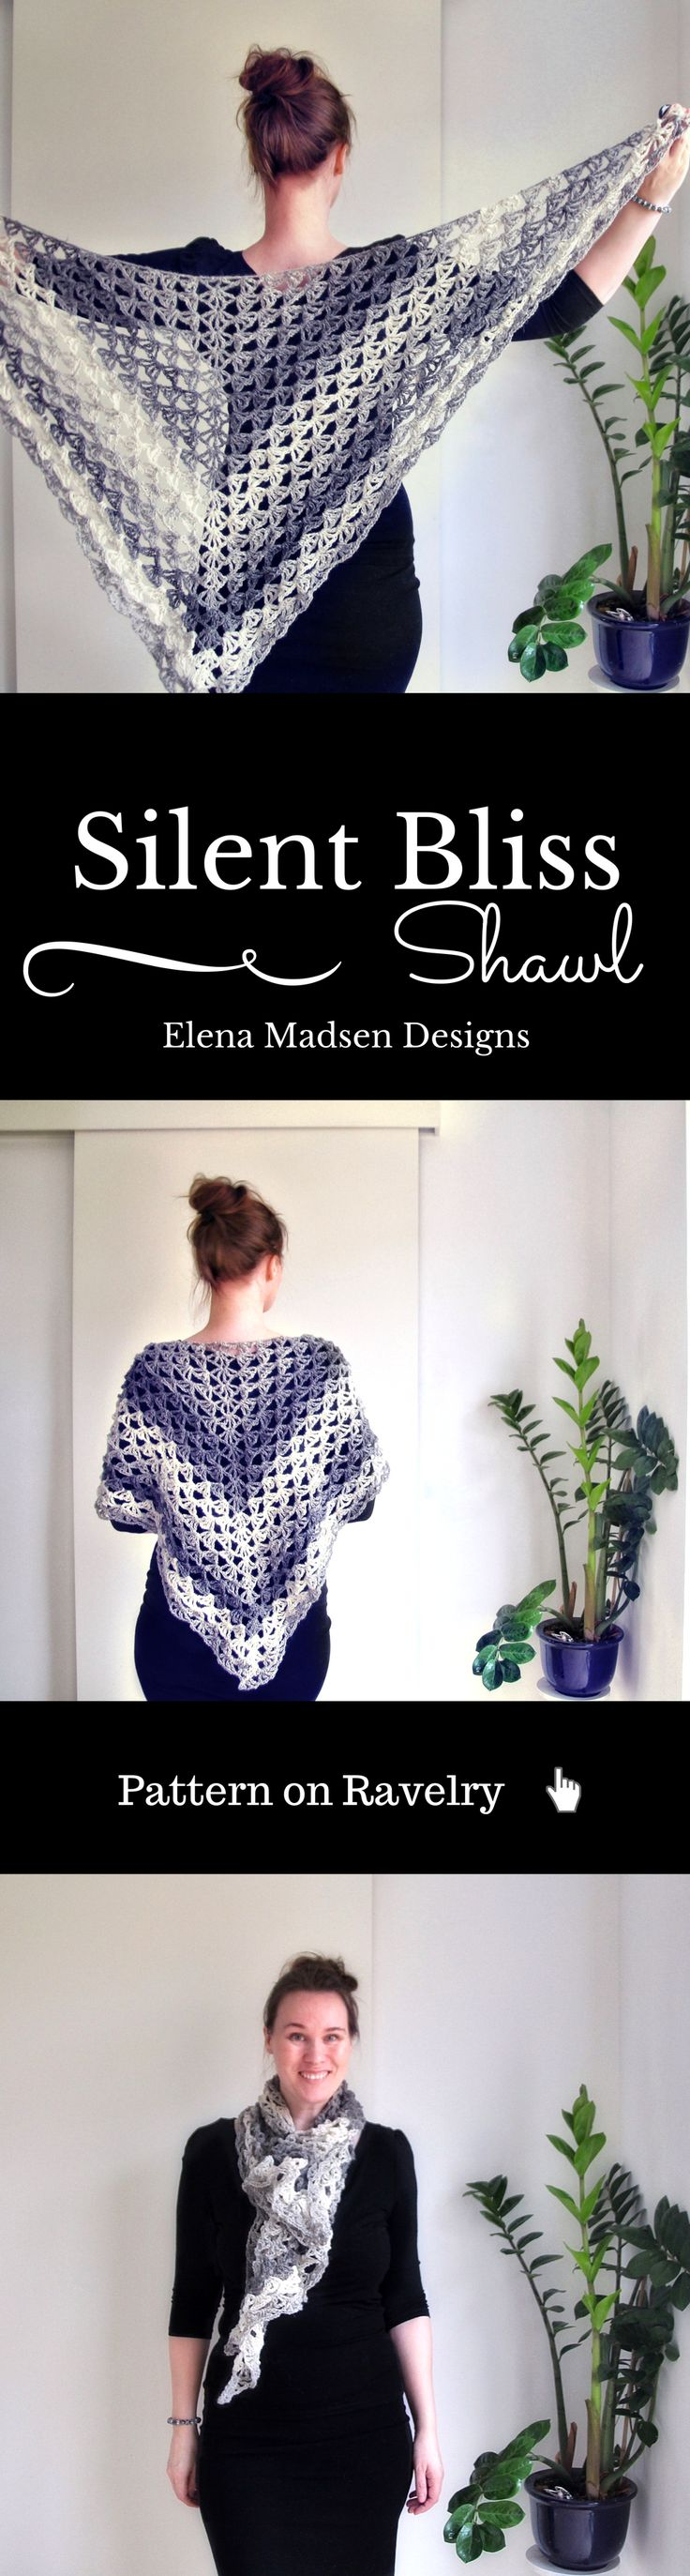 1000 images about crochet thread mini amp micro on pinterest - Large And Lacy Crochet Shawl Pattern Easy To Make Fully Written And With Charts